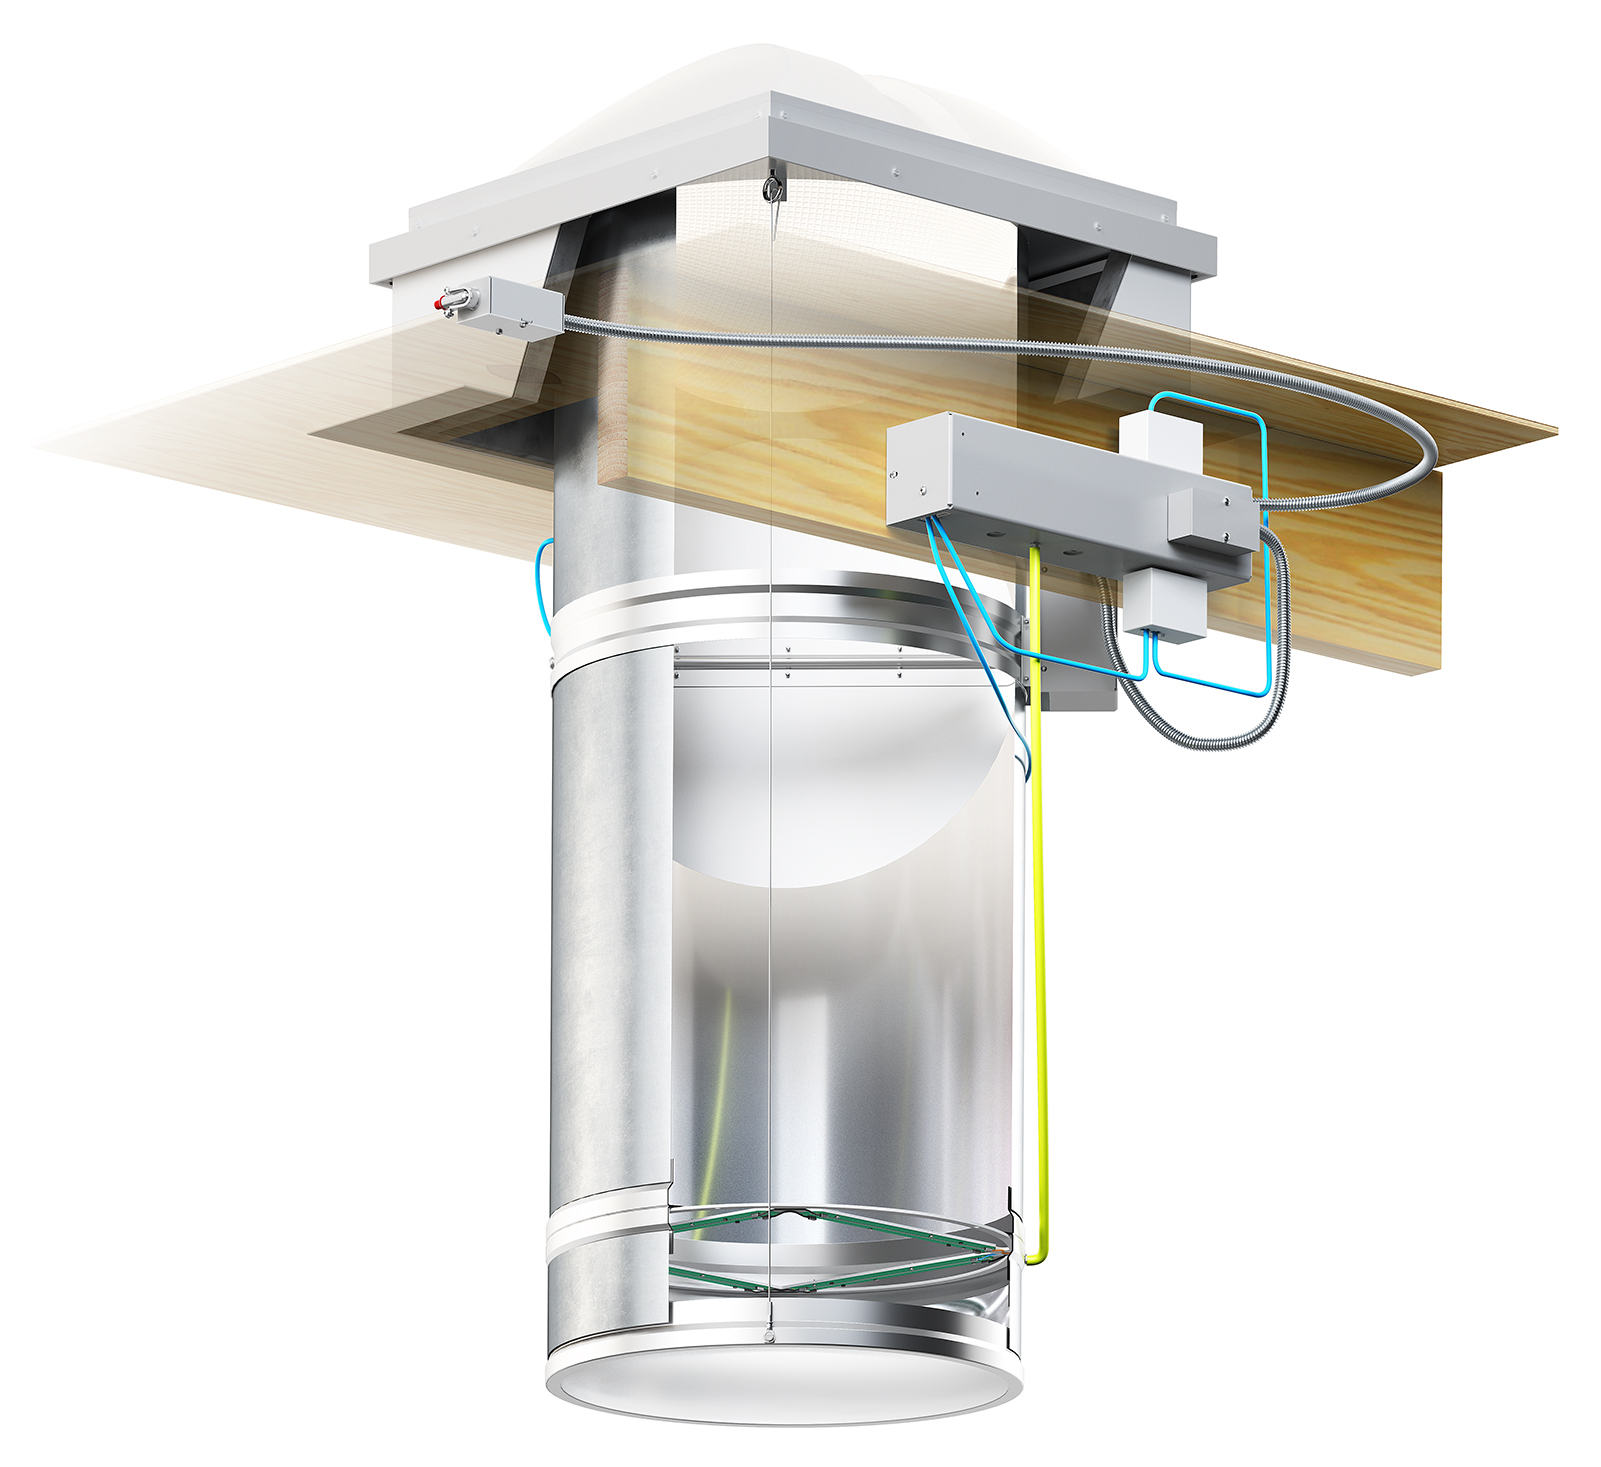 SLFOL Tubular Daylighting System